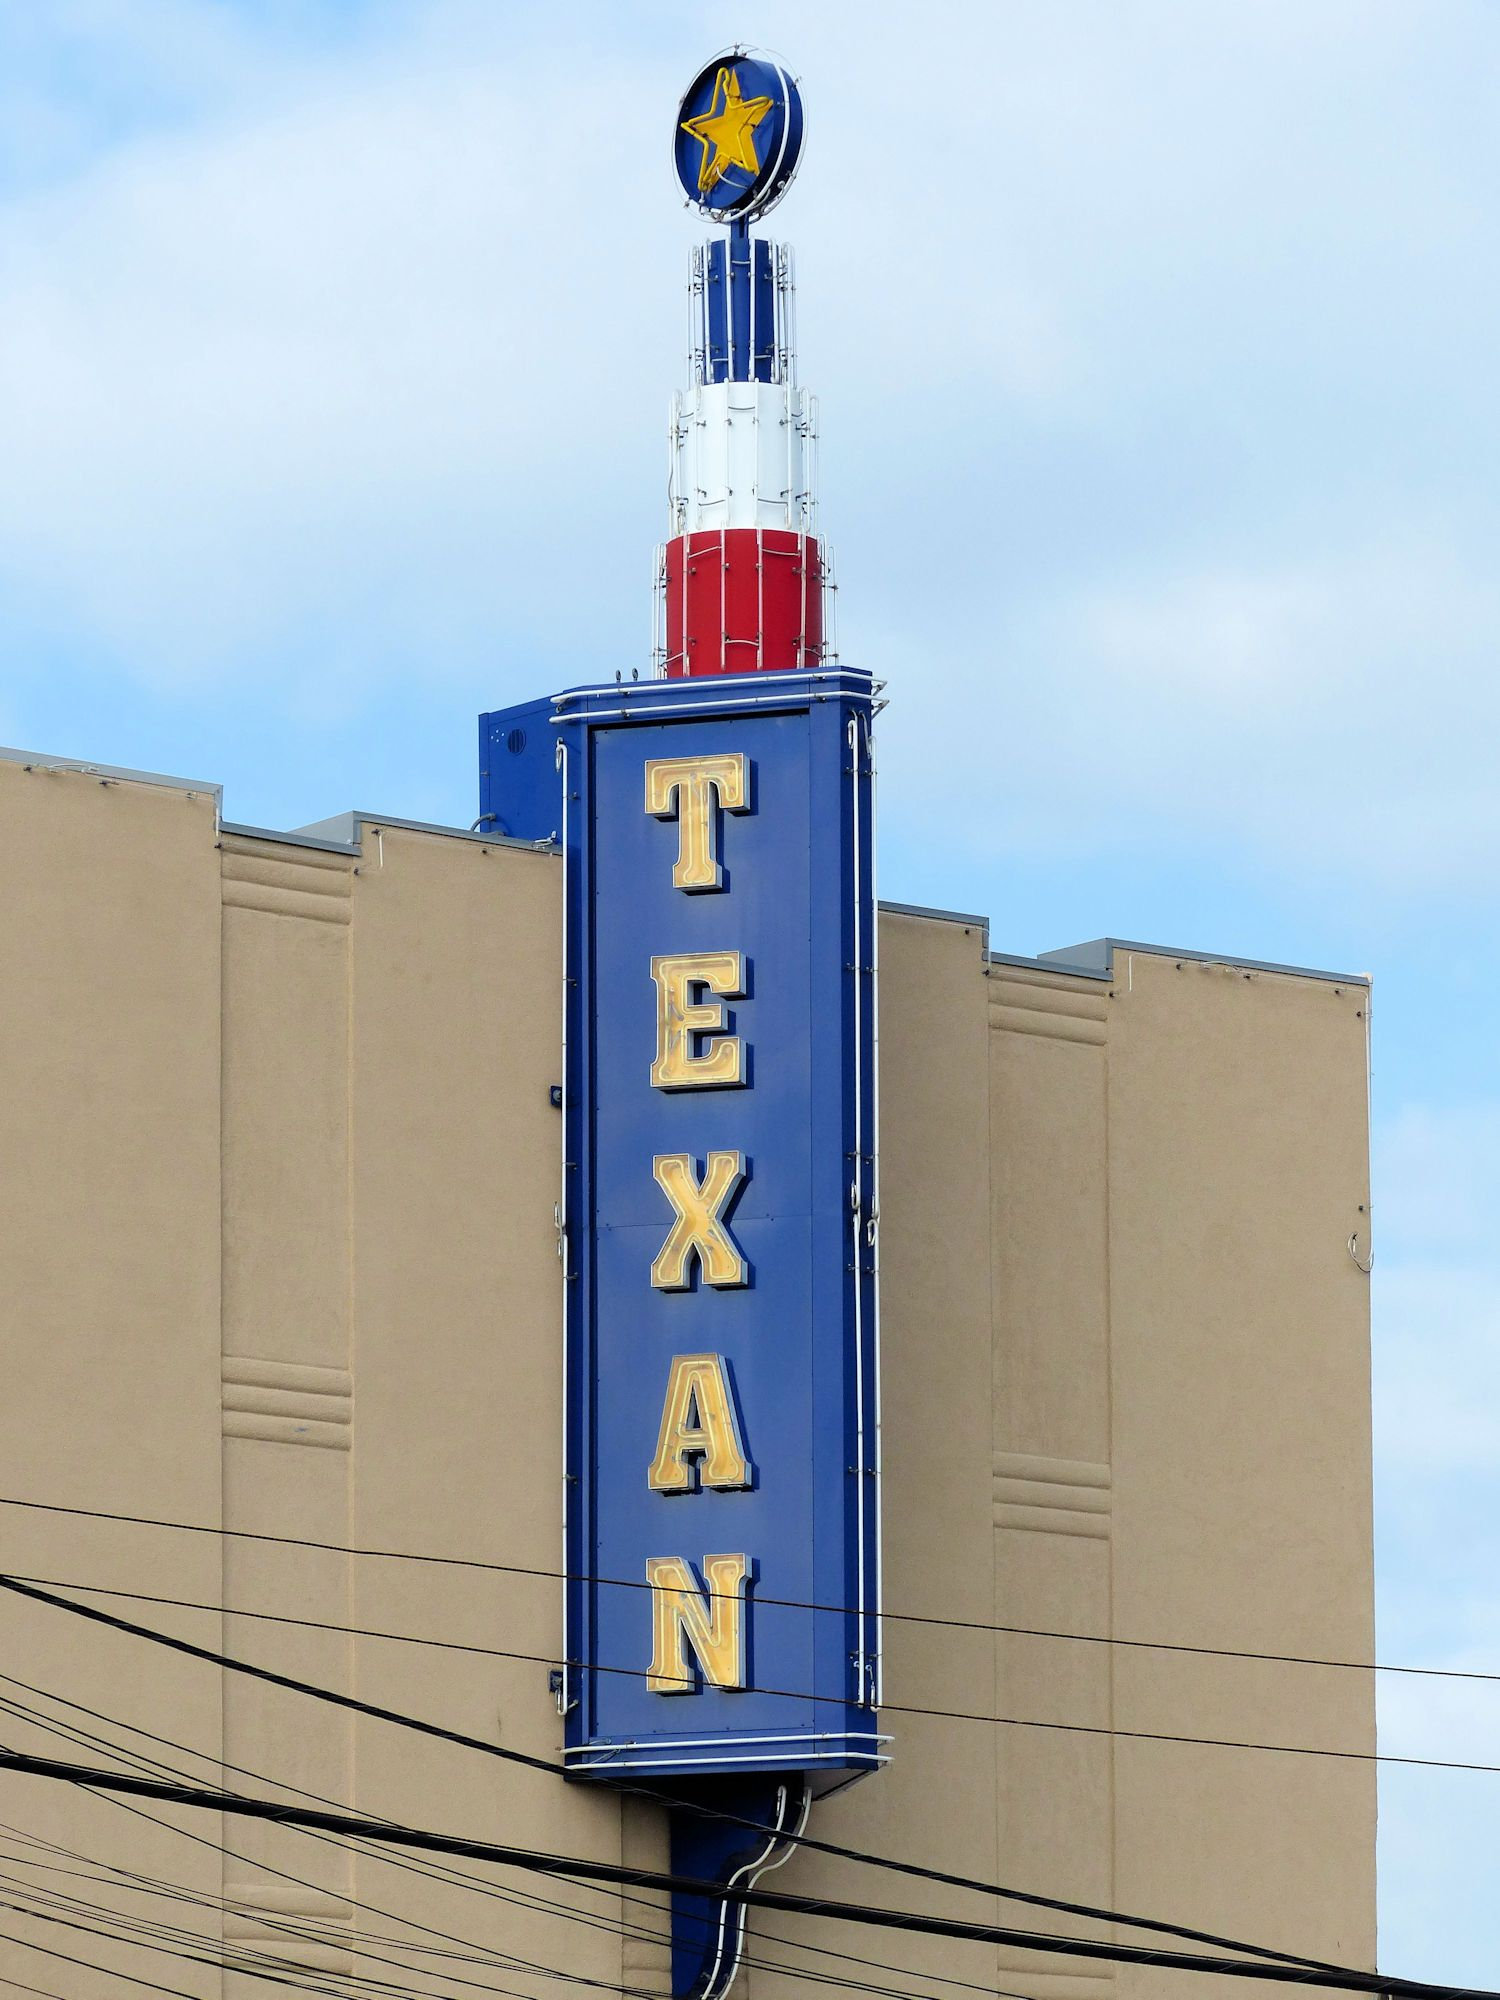 Texan picture show